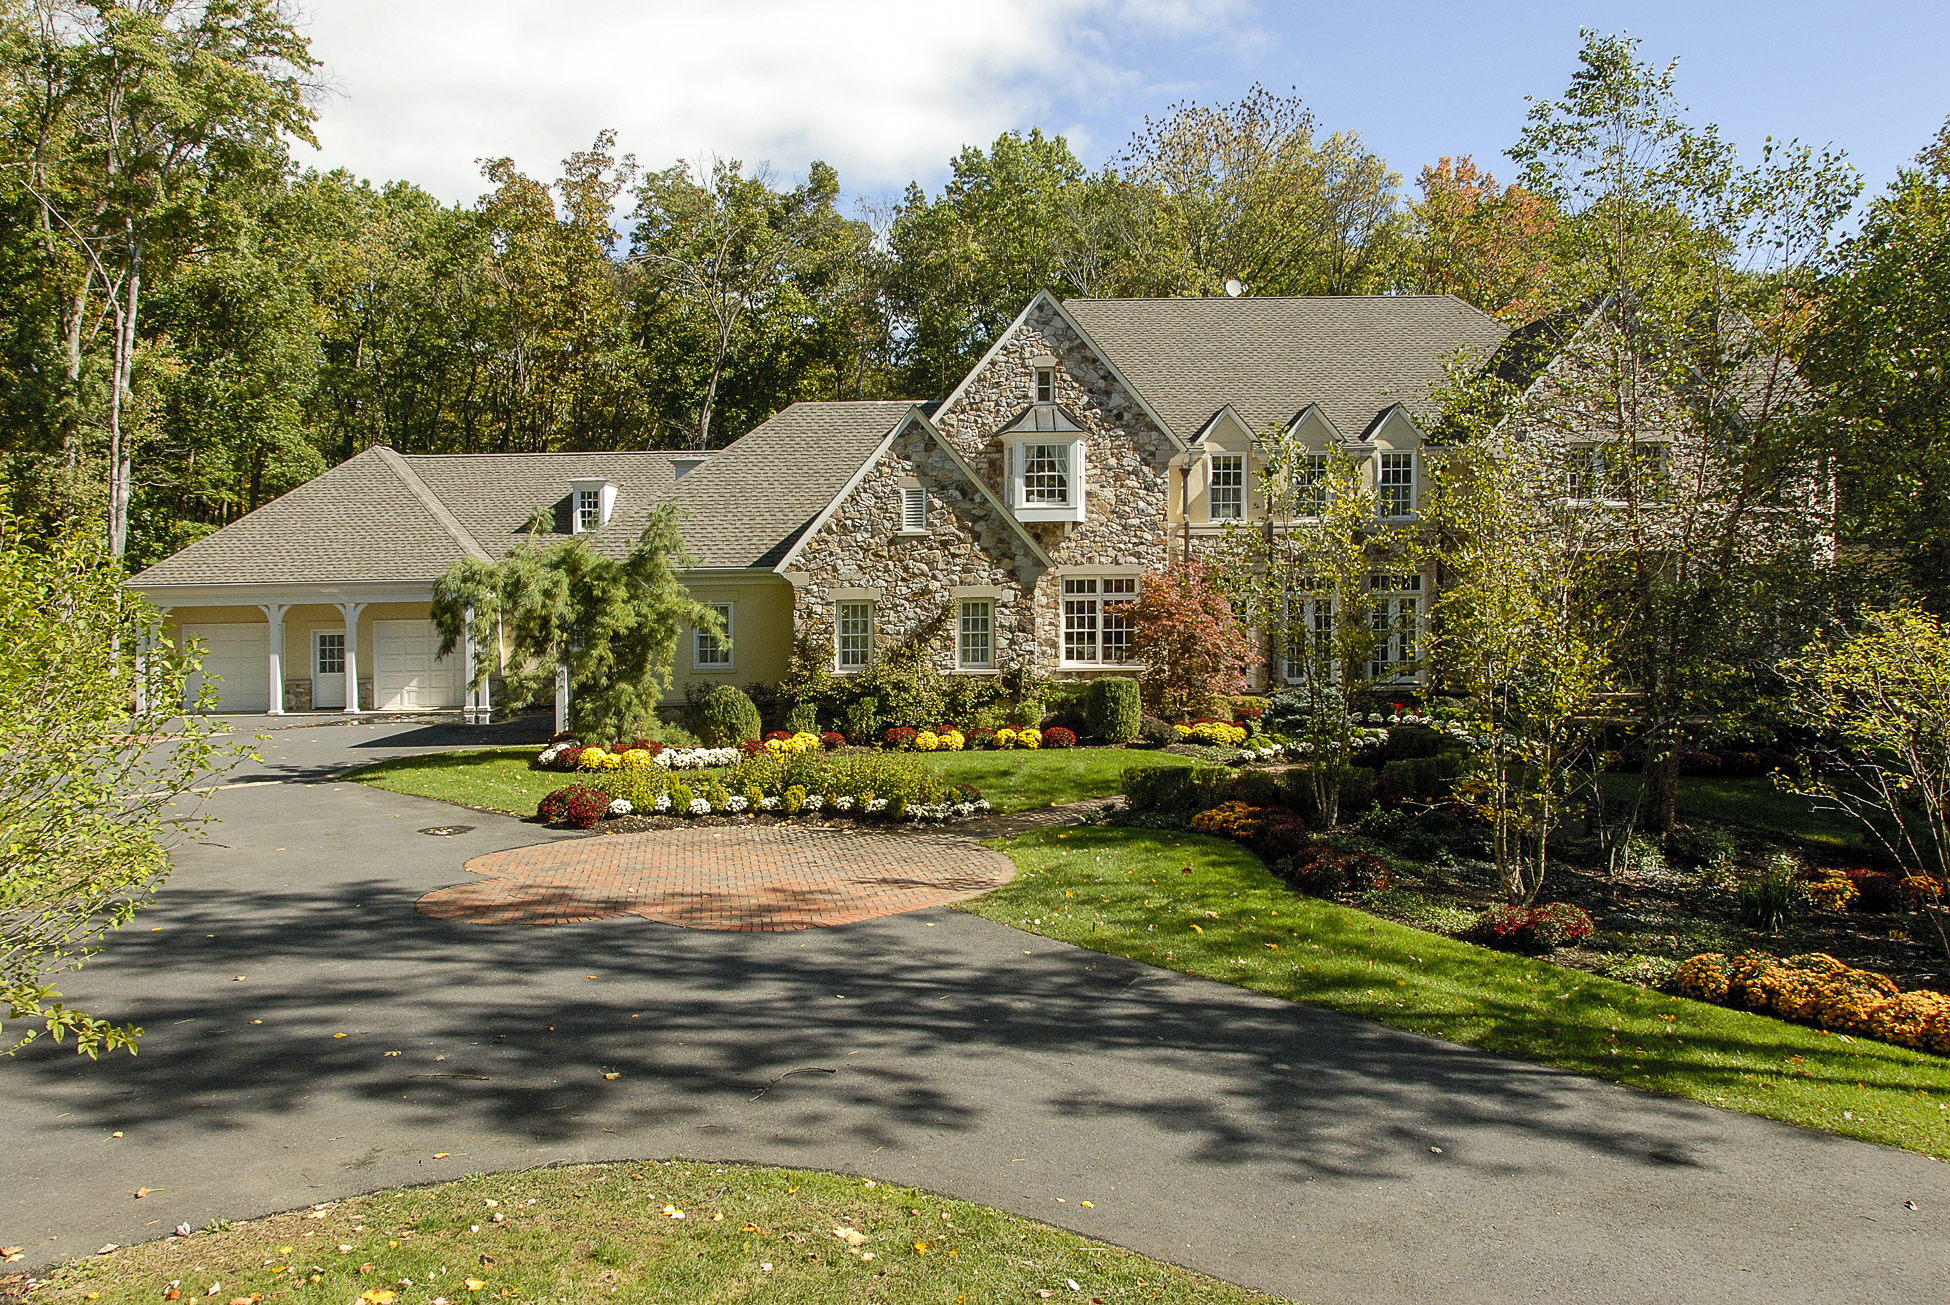 独户住宅 为 销售 在 Magnificent Manor Home in Princeton's Coveted Rushbrook 27 Running Cedar Road 普林斯顿, 新泽西州, 08540 美国